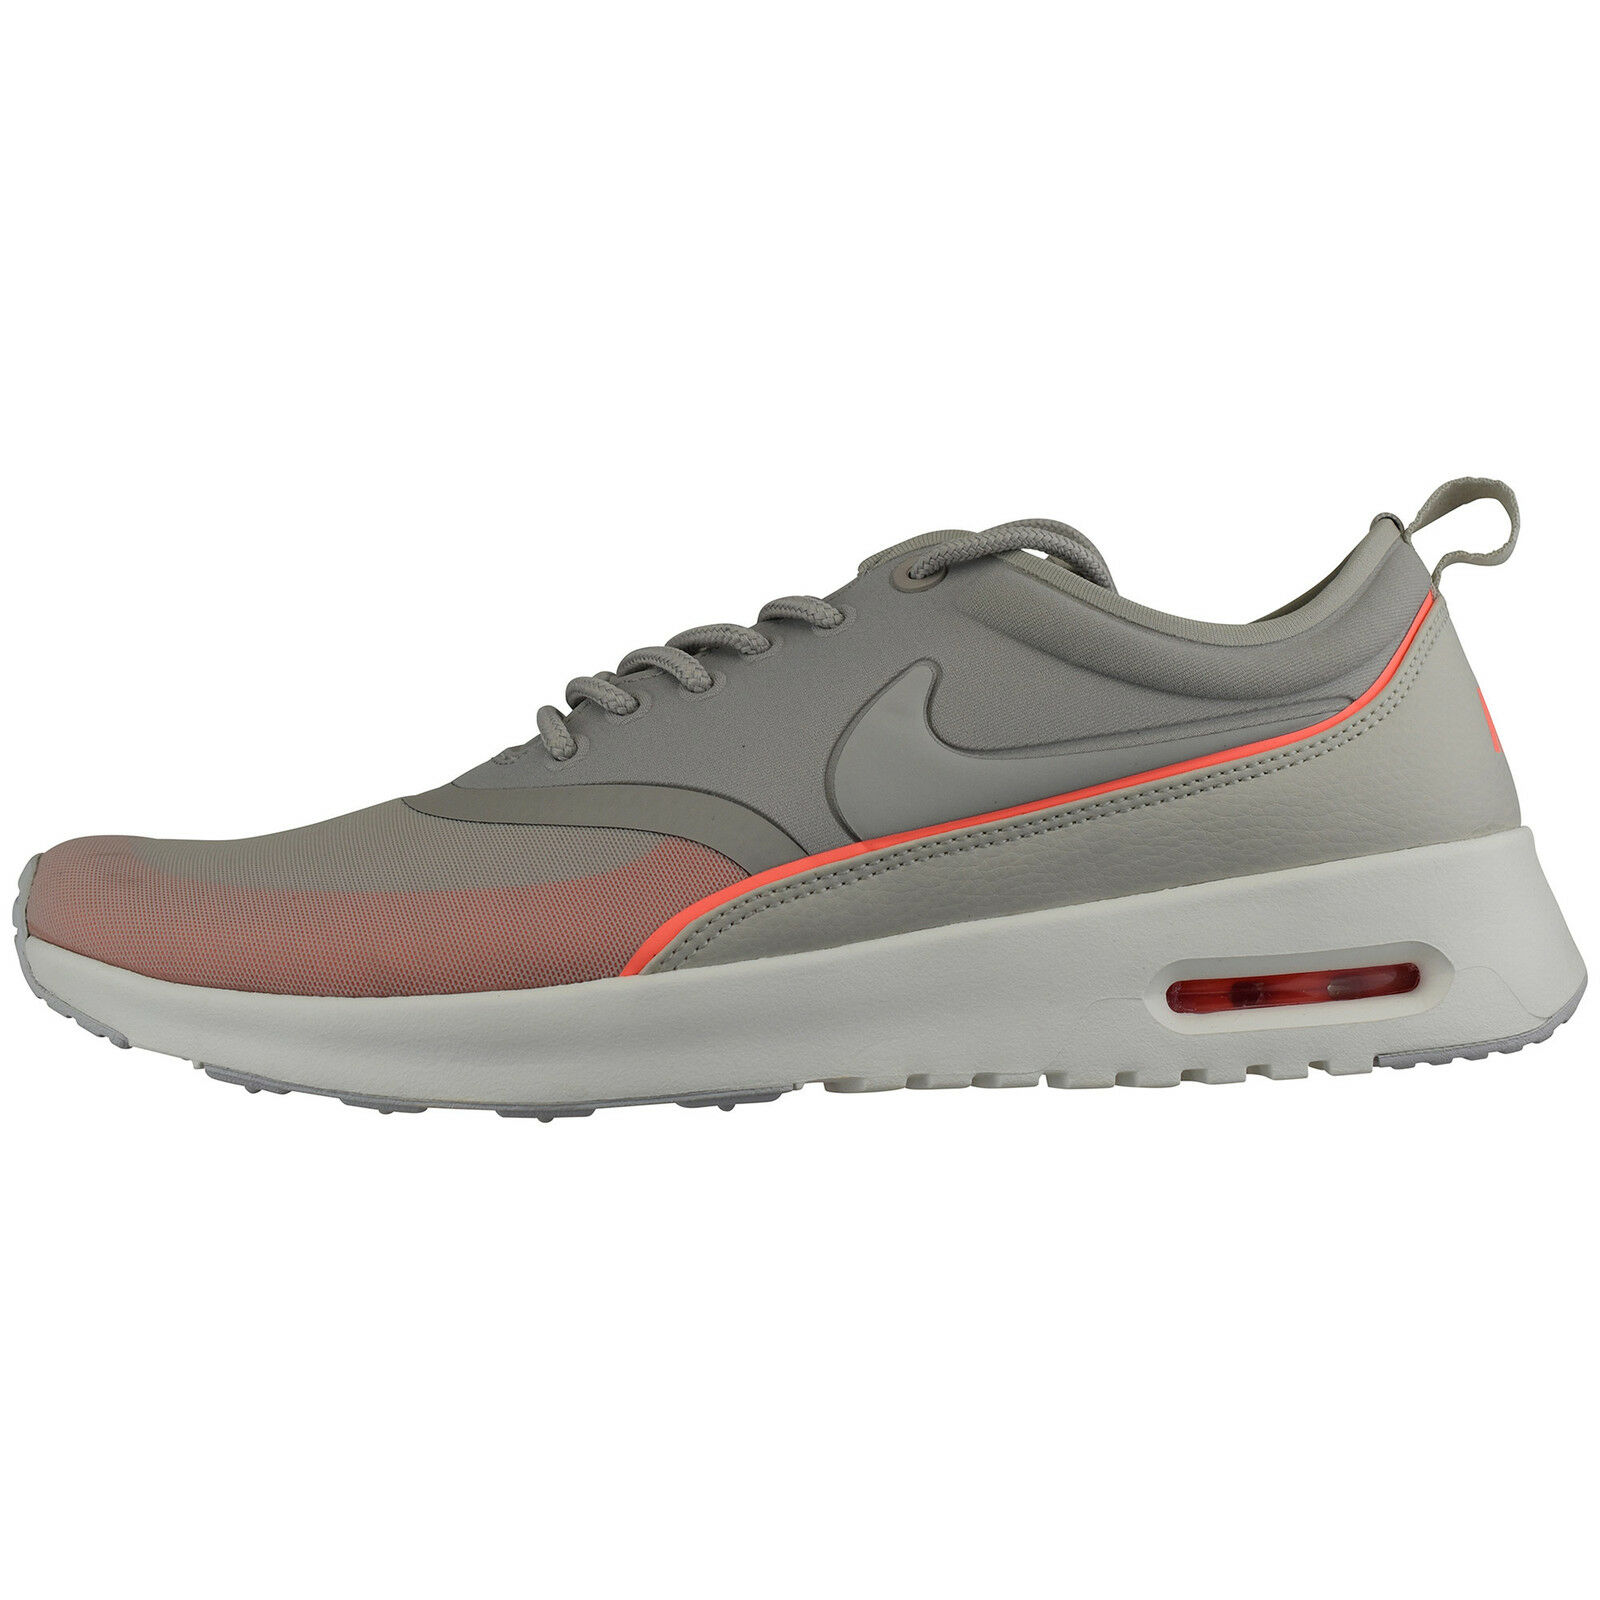 WMNS Nike Air Max Thea Ultra 844926-004 Running Shoes Casual Trainers Comfortable and good-looking